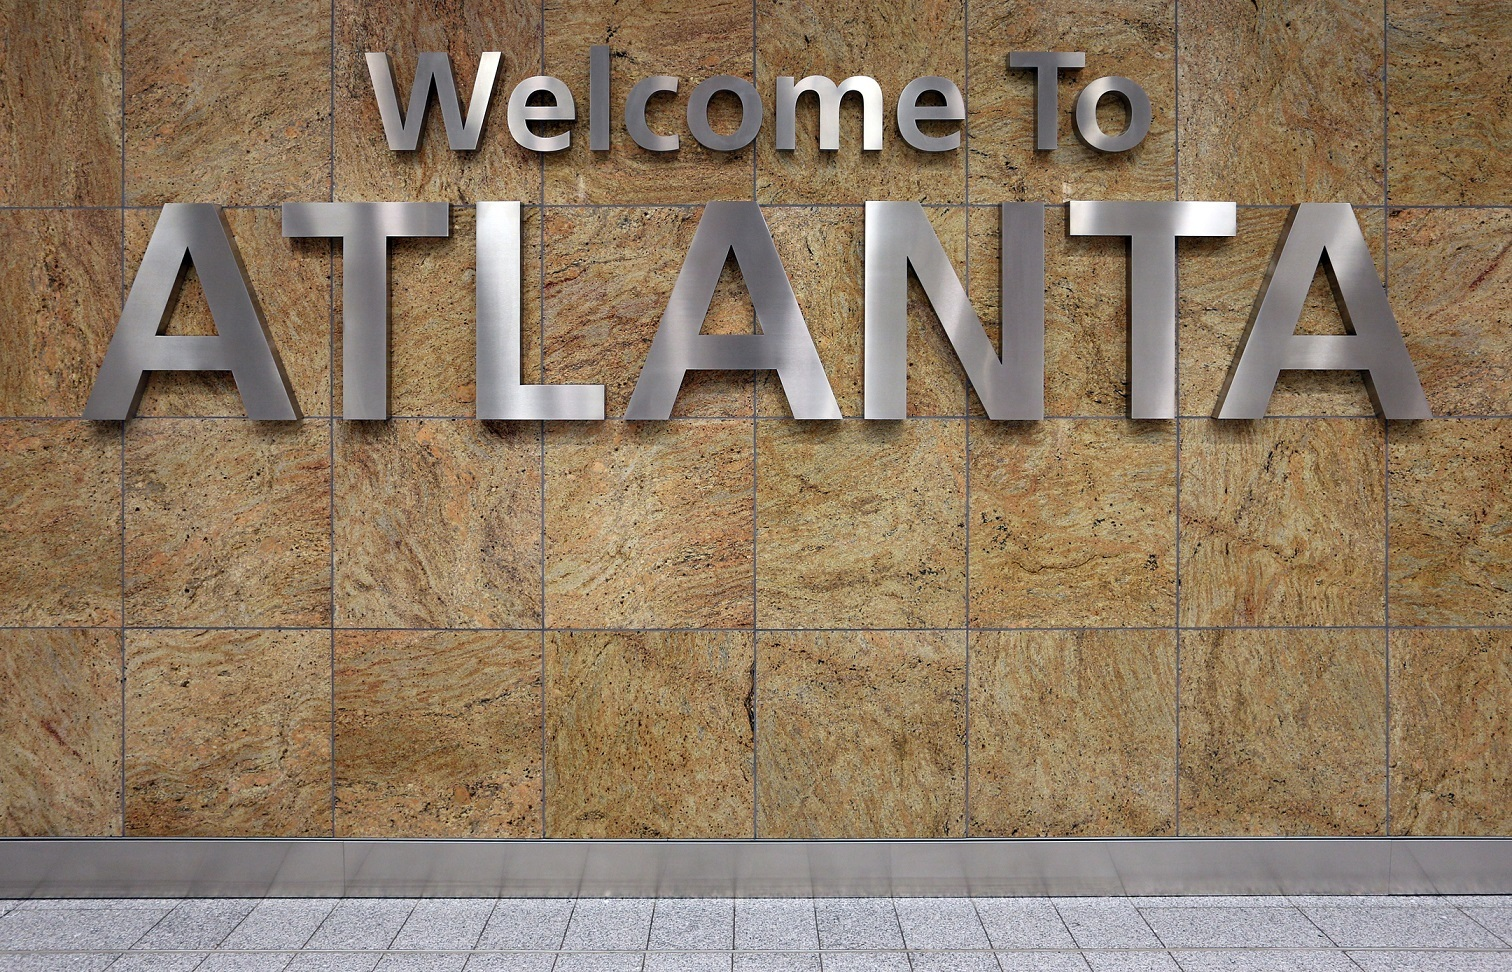 A Welcome to Atlanta sign in the Atlanta airport